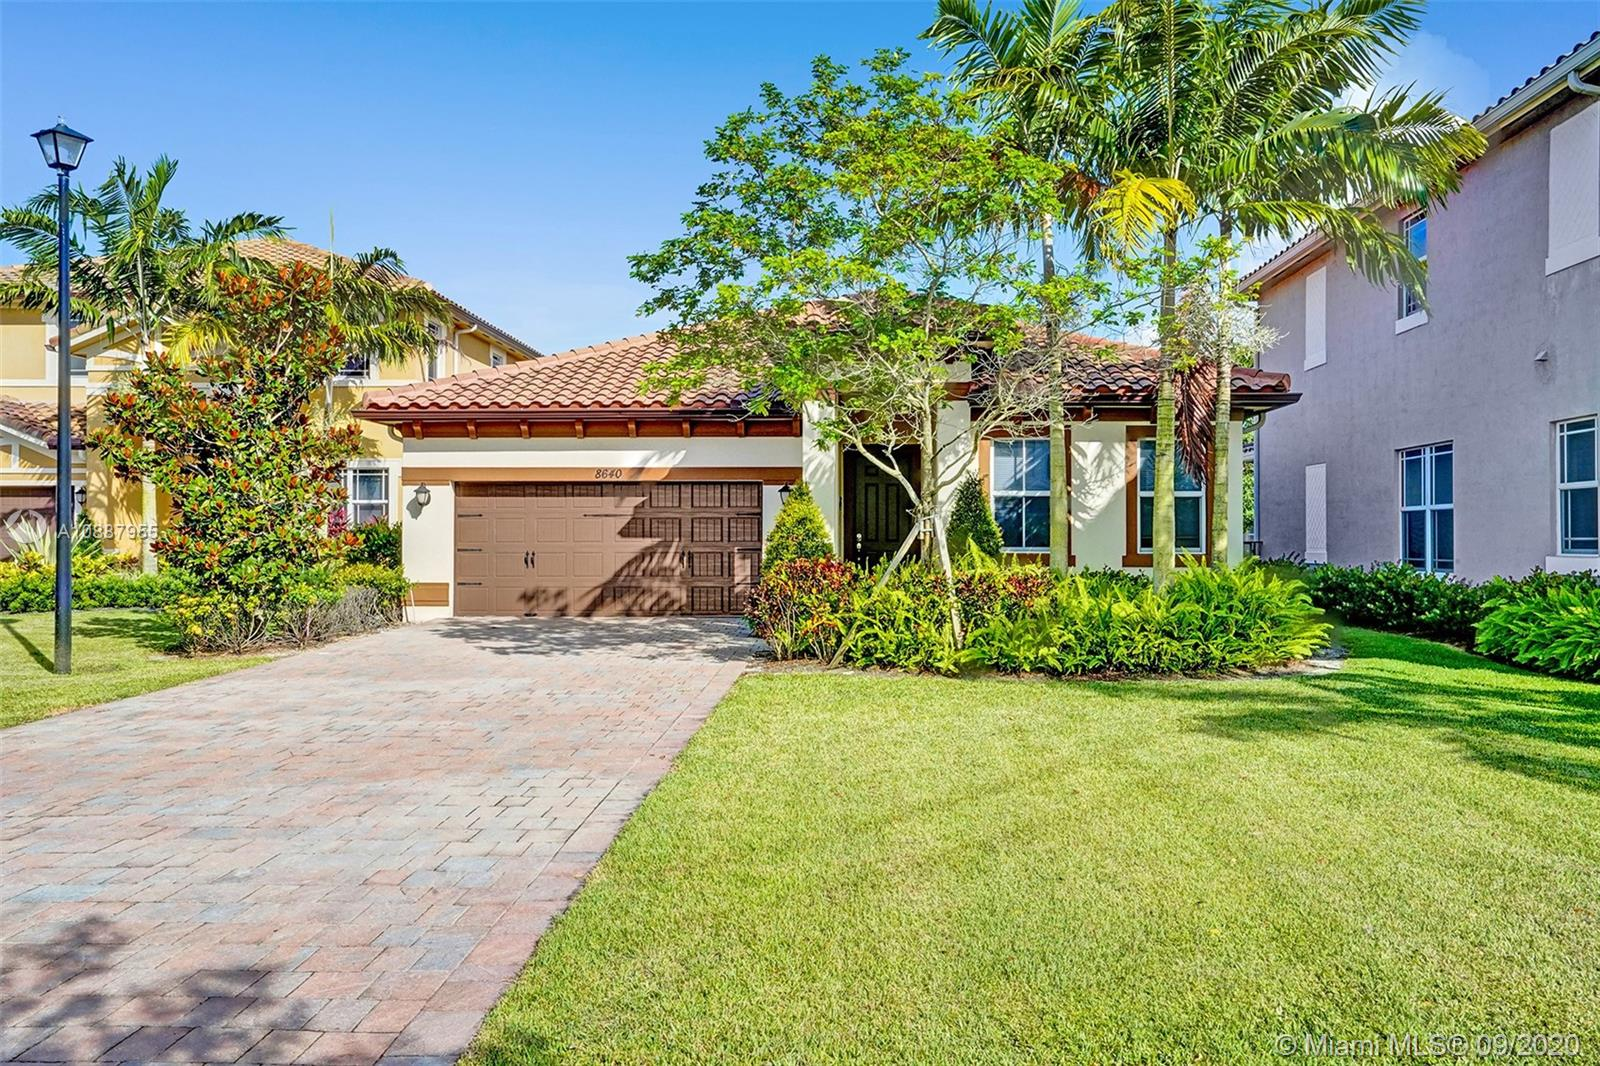 """WOW! GREAT BUY ON THIS HIGHLY UPGRADED CARLYLE MODEL ON A PRIME TIME CUL-DE-SAC LAKEFRONT LOT IN RED HOT MIRALAGO! CHERRY & GRANITE KITCHEN WITH STAINLESS STEEL APPLIANCES! 5 YEARS NEW WITH FULL HURRICANE IMPACT WINDOWS & DOORS! 20"""" DIAGONAL PORCELAIN """"SATURNIA LOOK"""" TILE AND MORE!"""